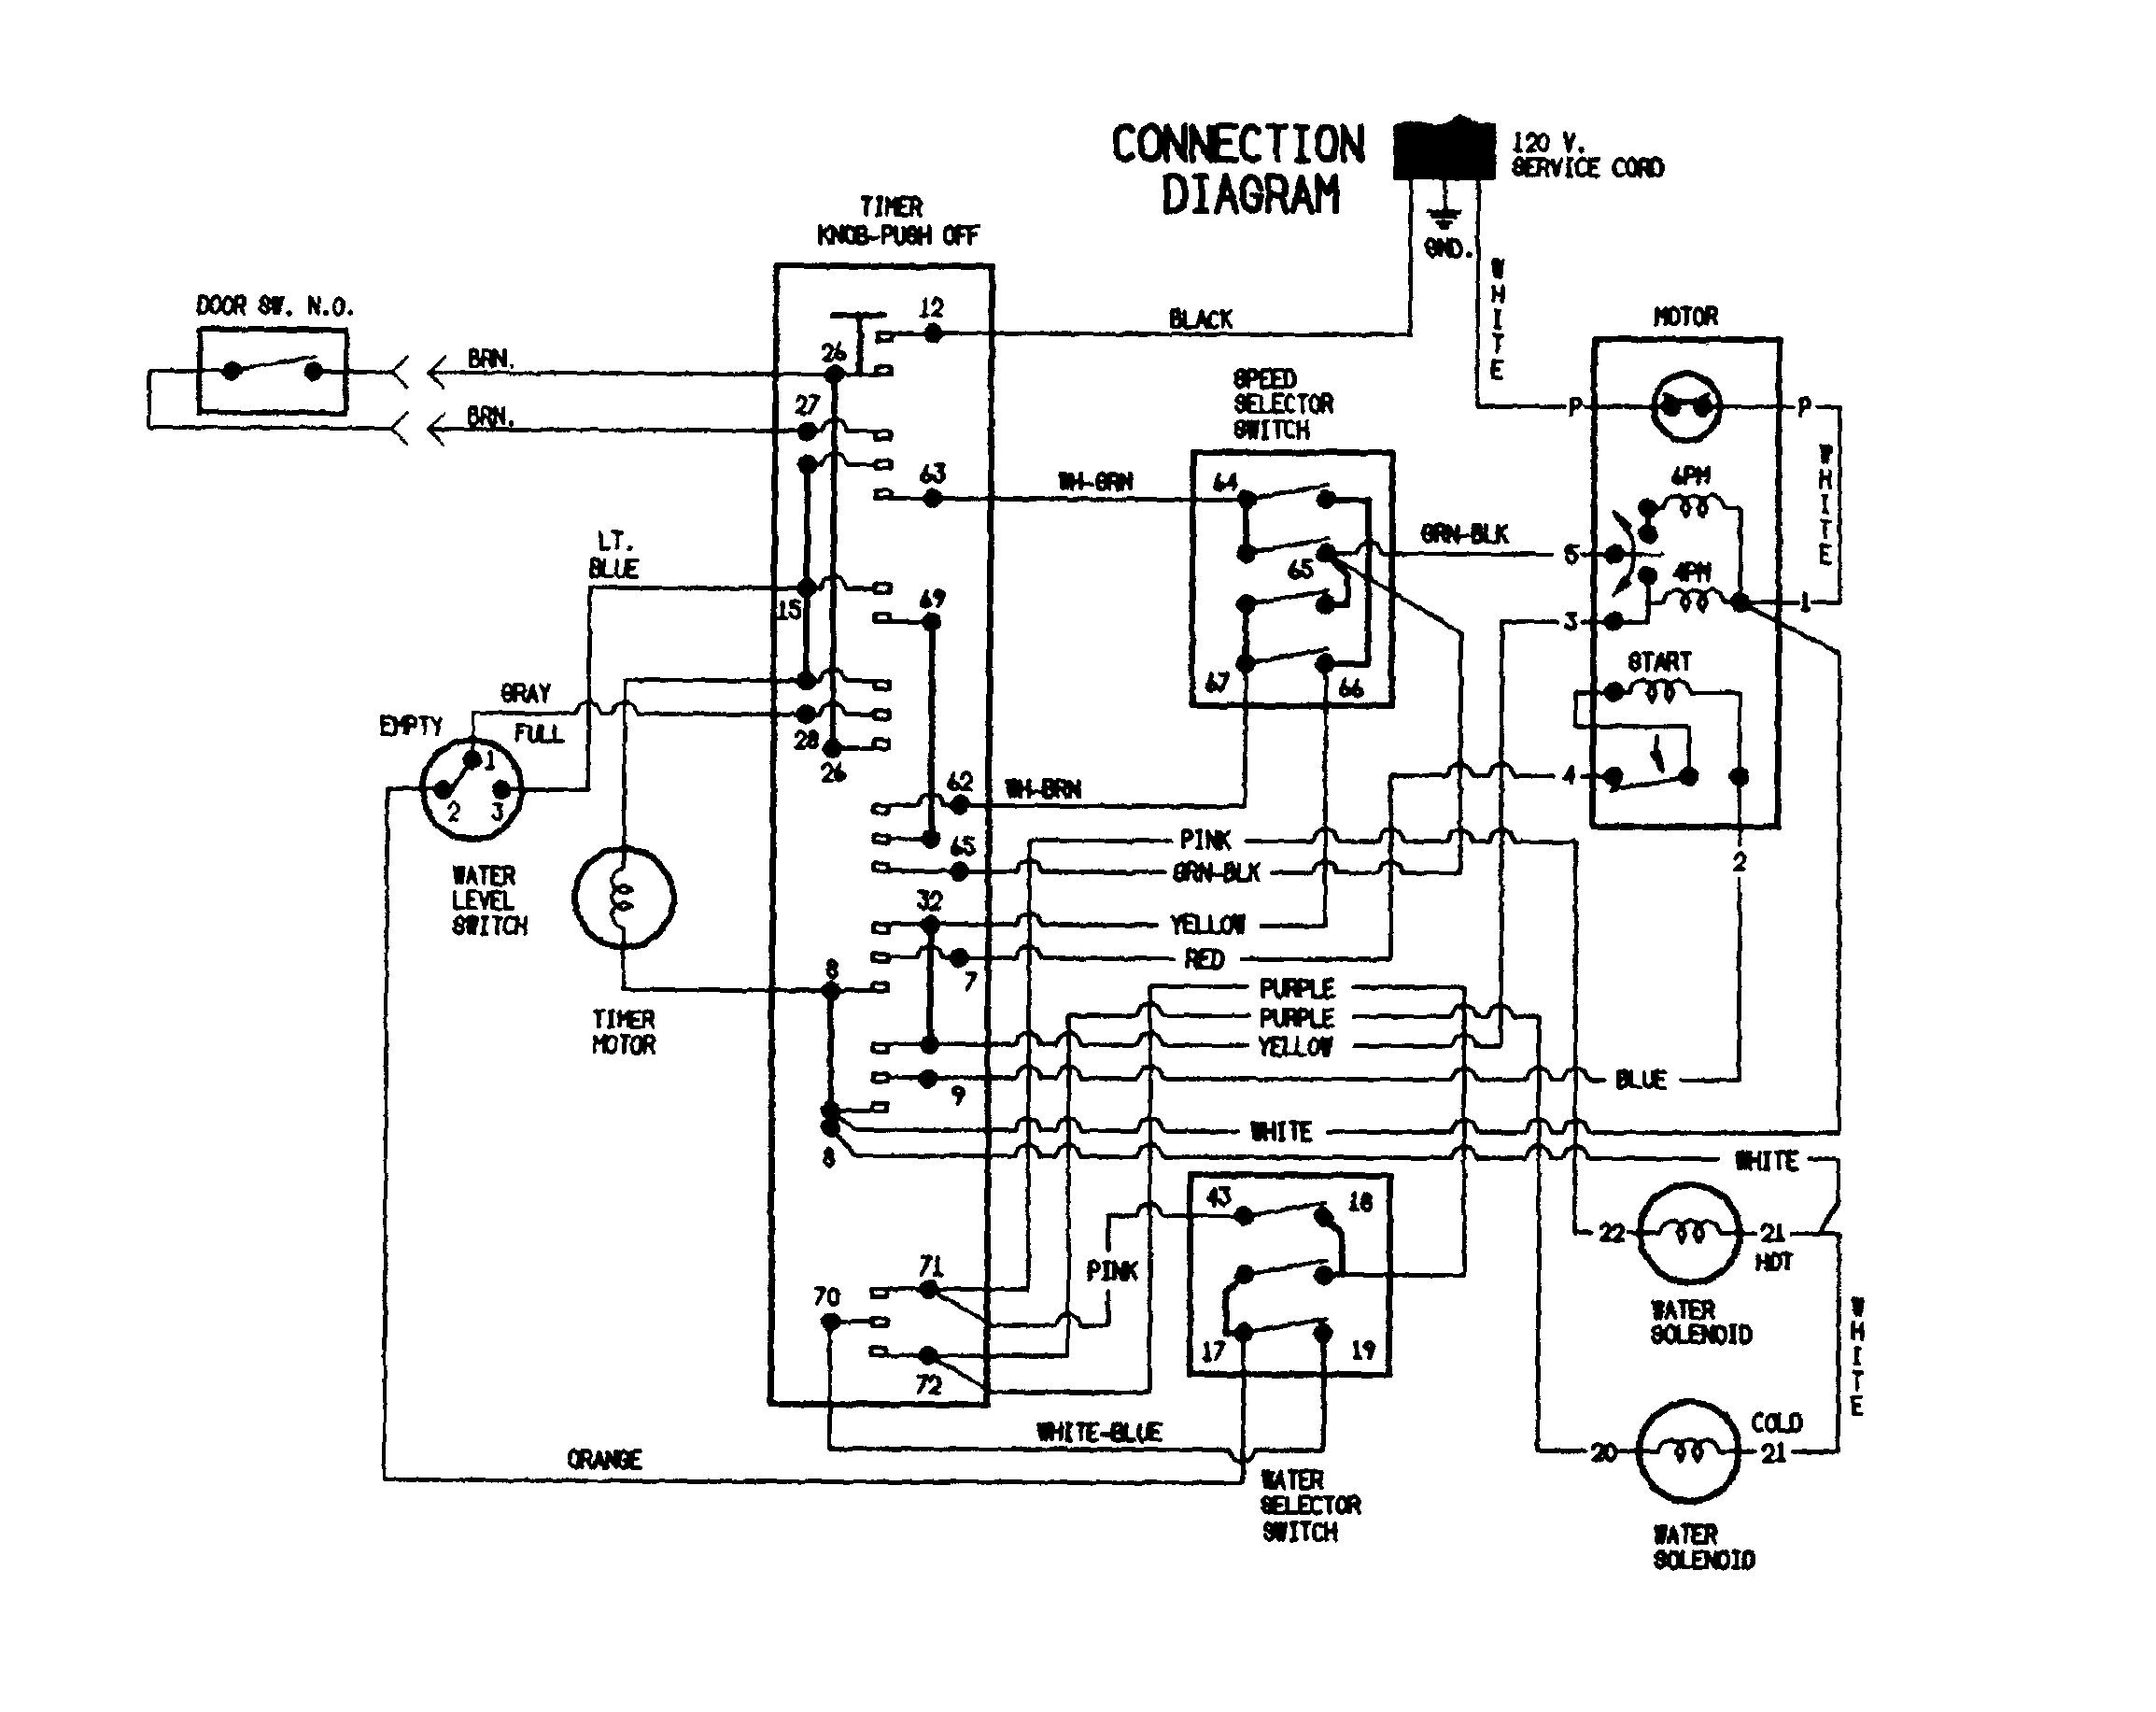 Wiring A 240v Dryer Schematic Best Library Plug Diagram